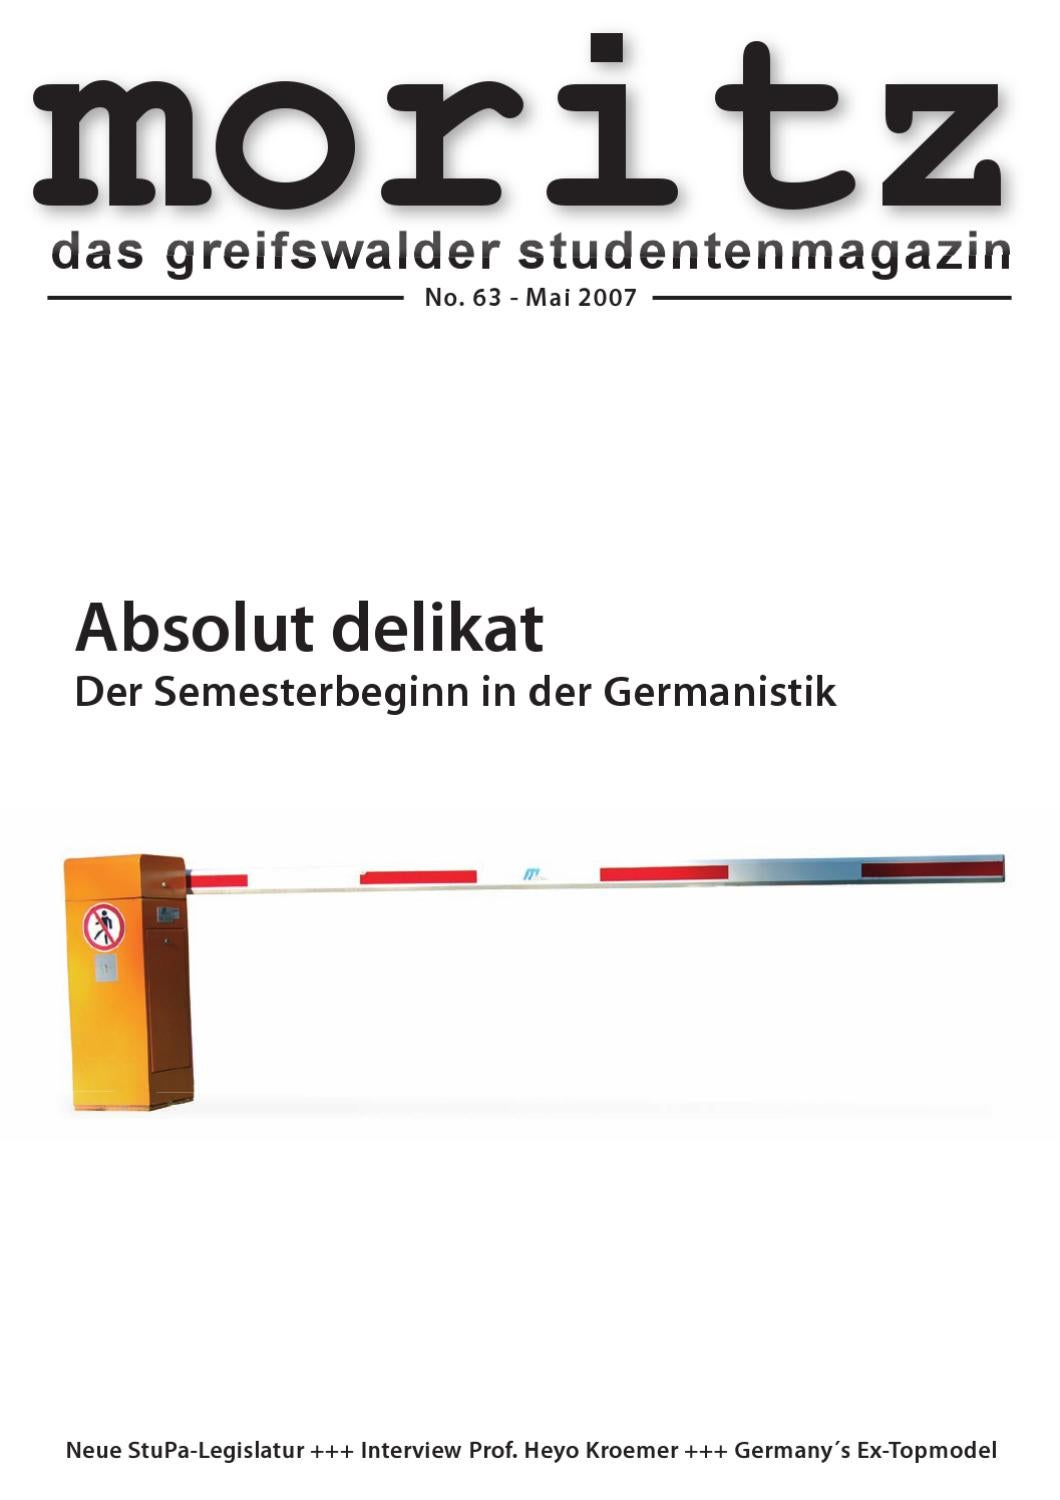 web_mm63 by moritz magazin - issuu